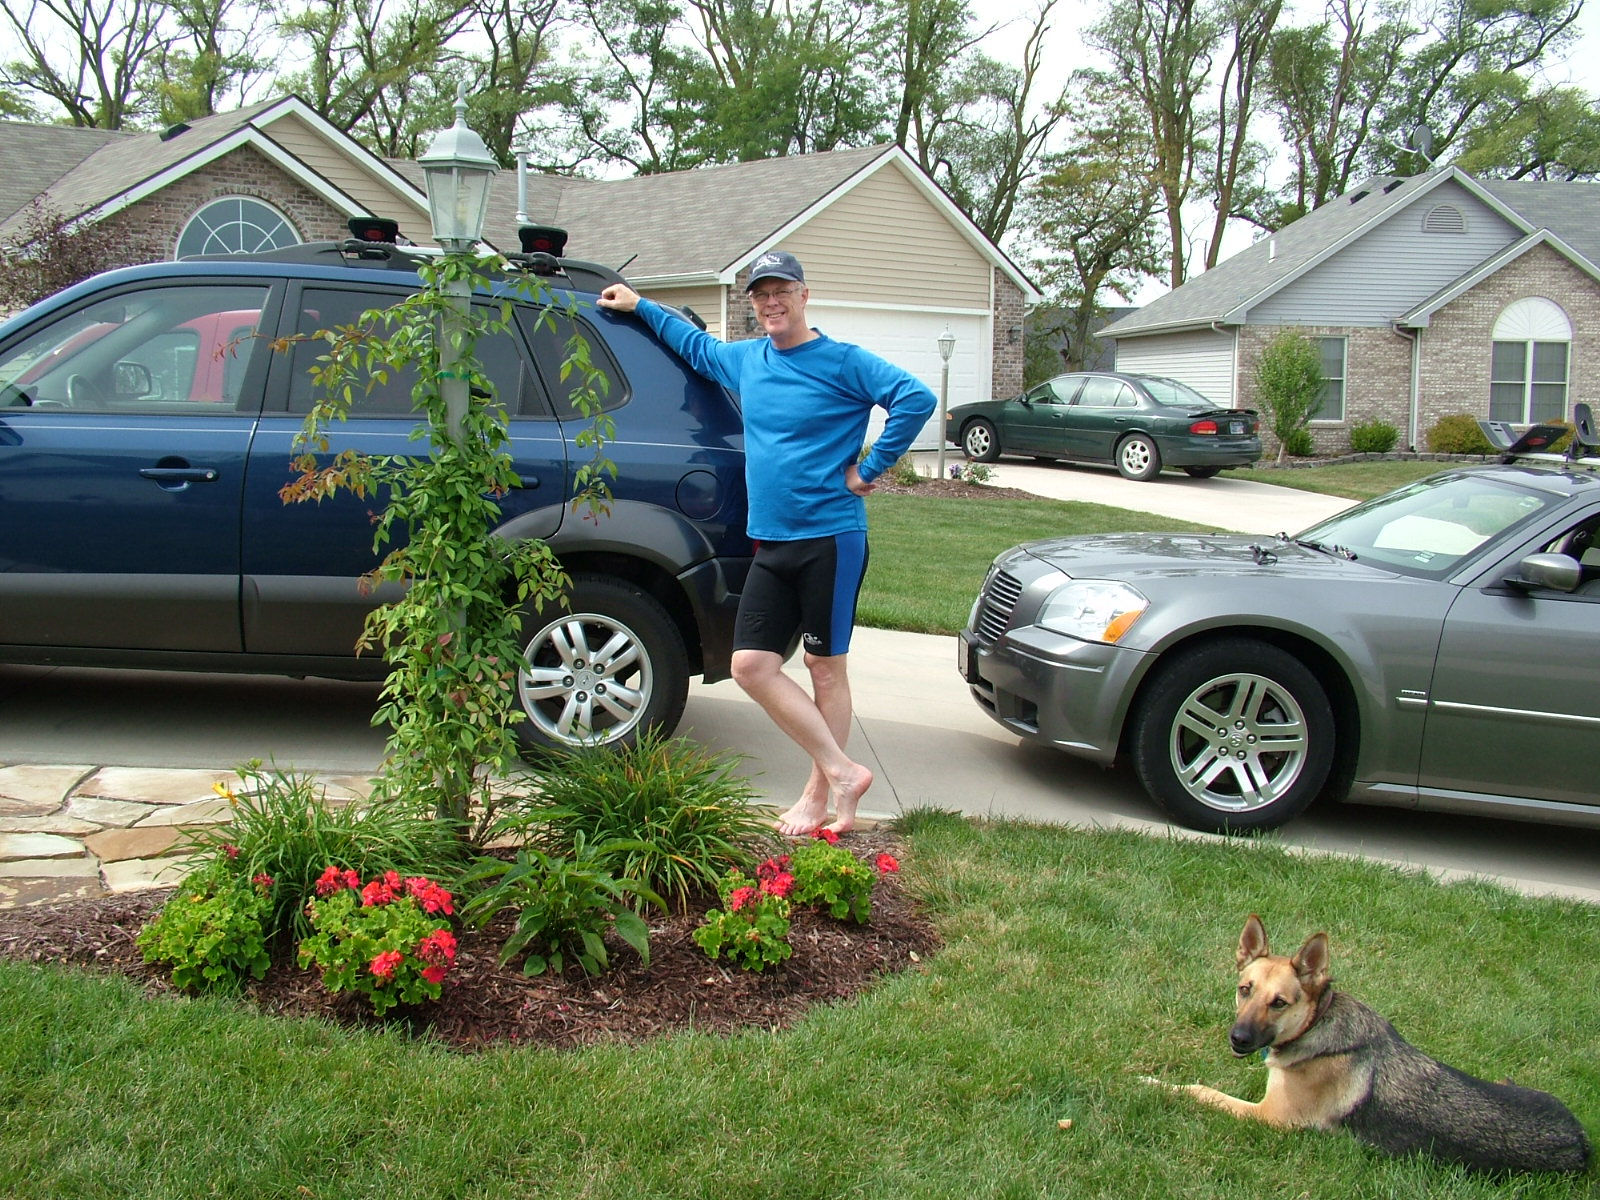 Hyundai, Tuscon, German shepherd, garden, light pole, garden bed, Dodge Magnum, paddling gear, front driveway, holding things lightly, Christian man